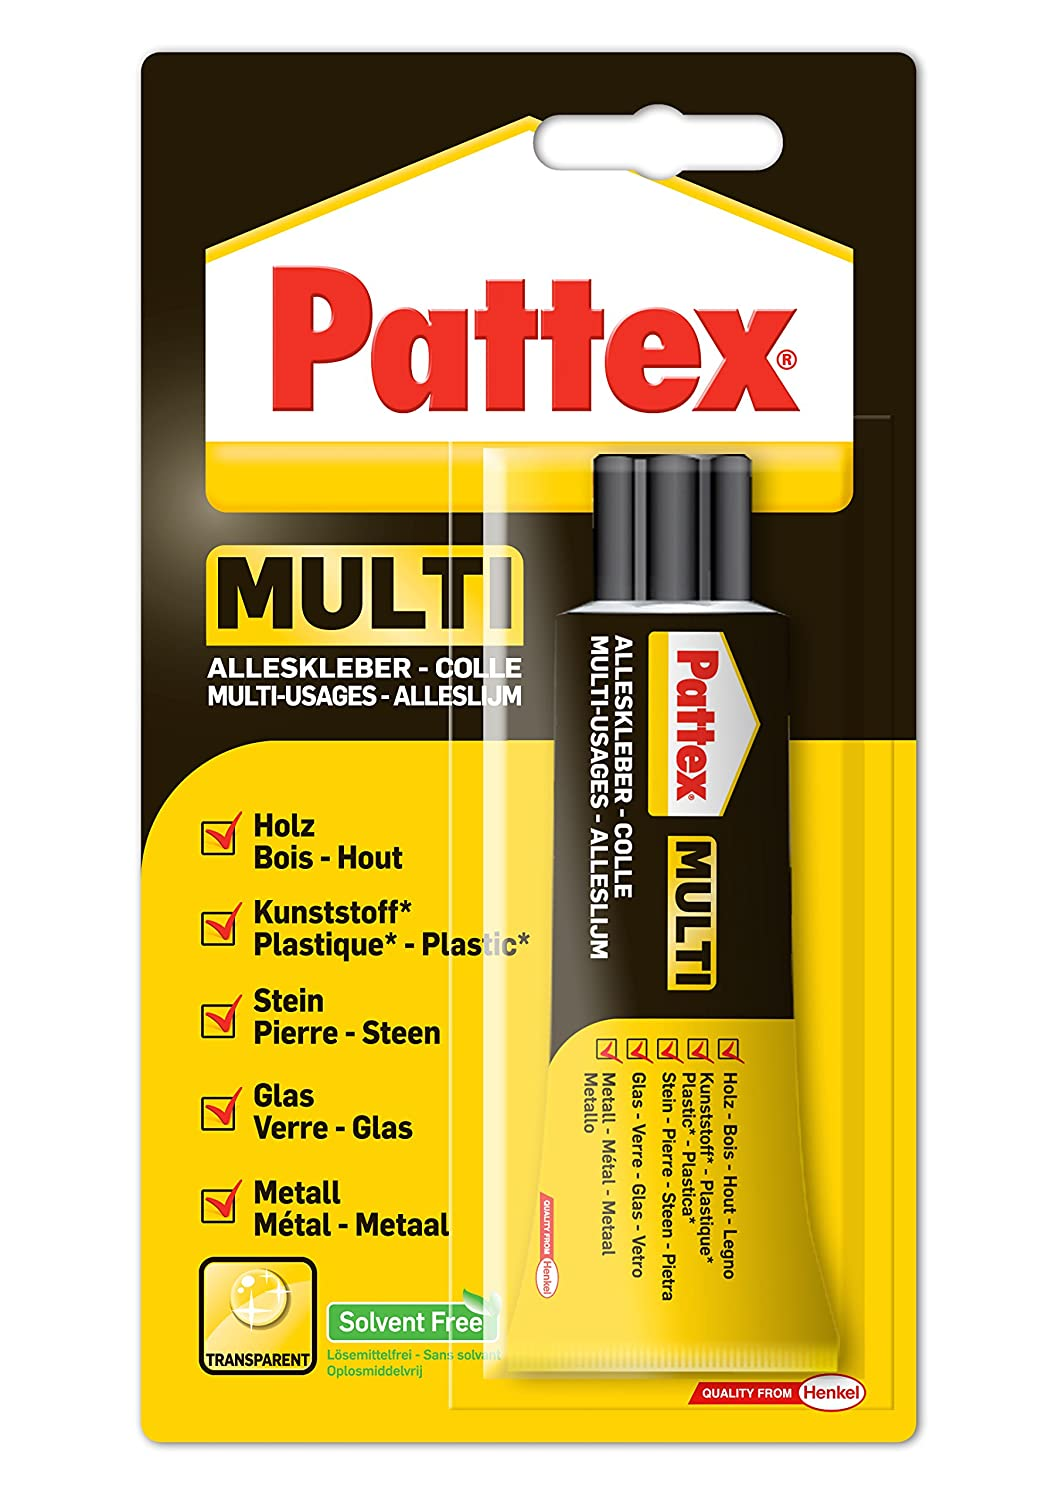 Pattex Colle usages multi - 50 g 1472479